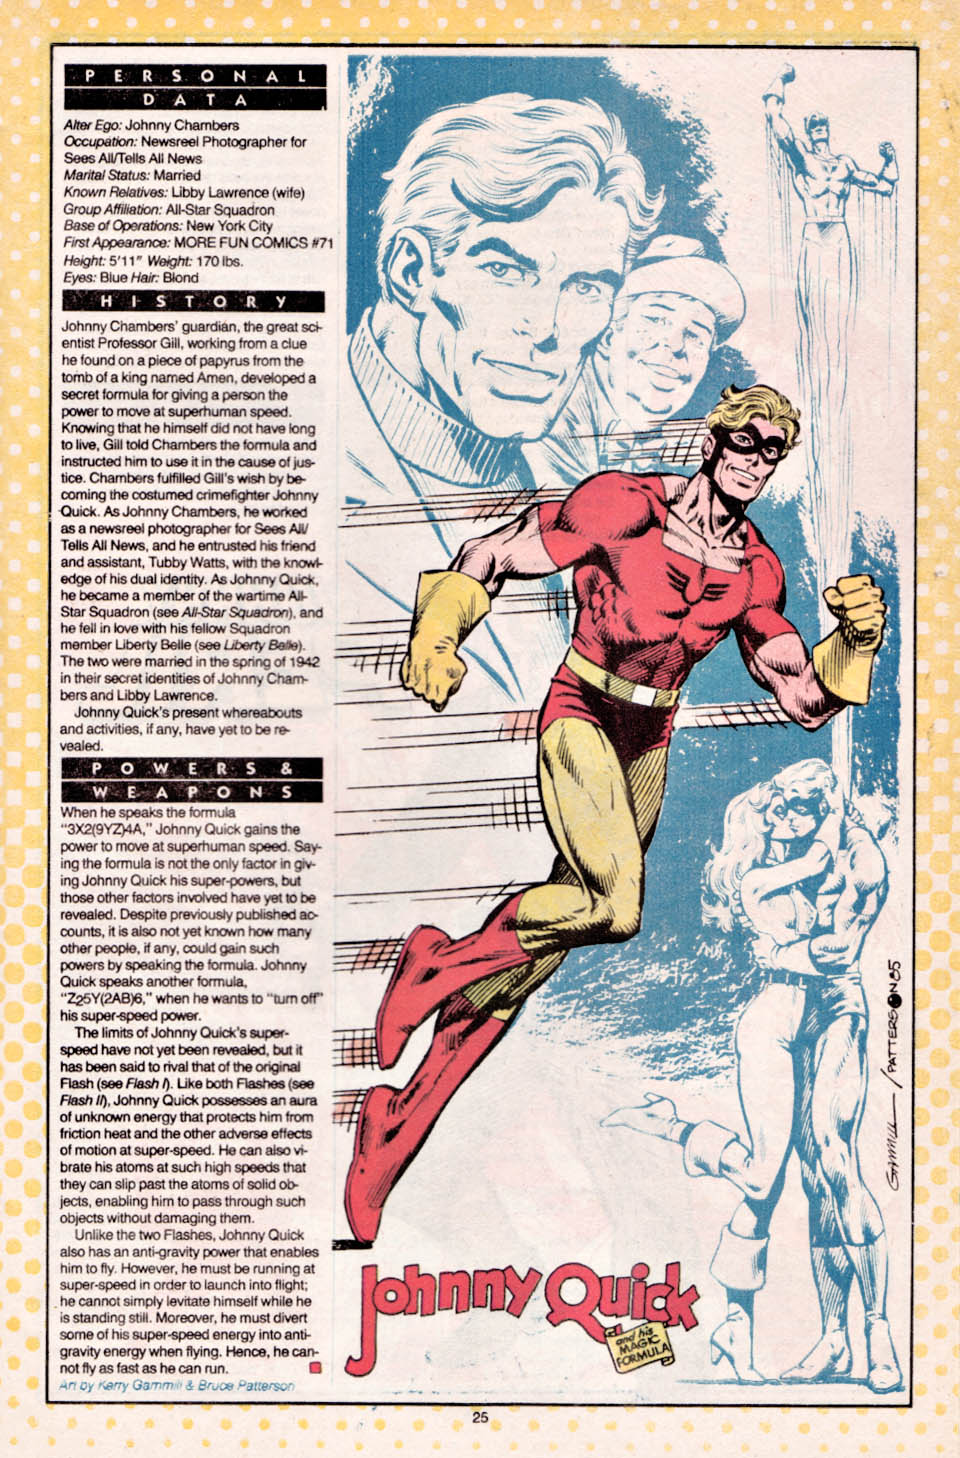 Who's Who Johnny Quick by Kerry Gammill and Bruce Patterson